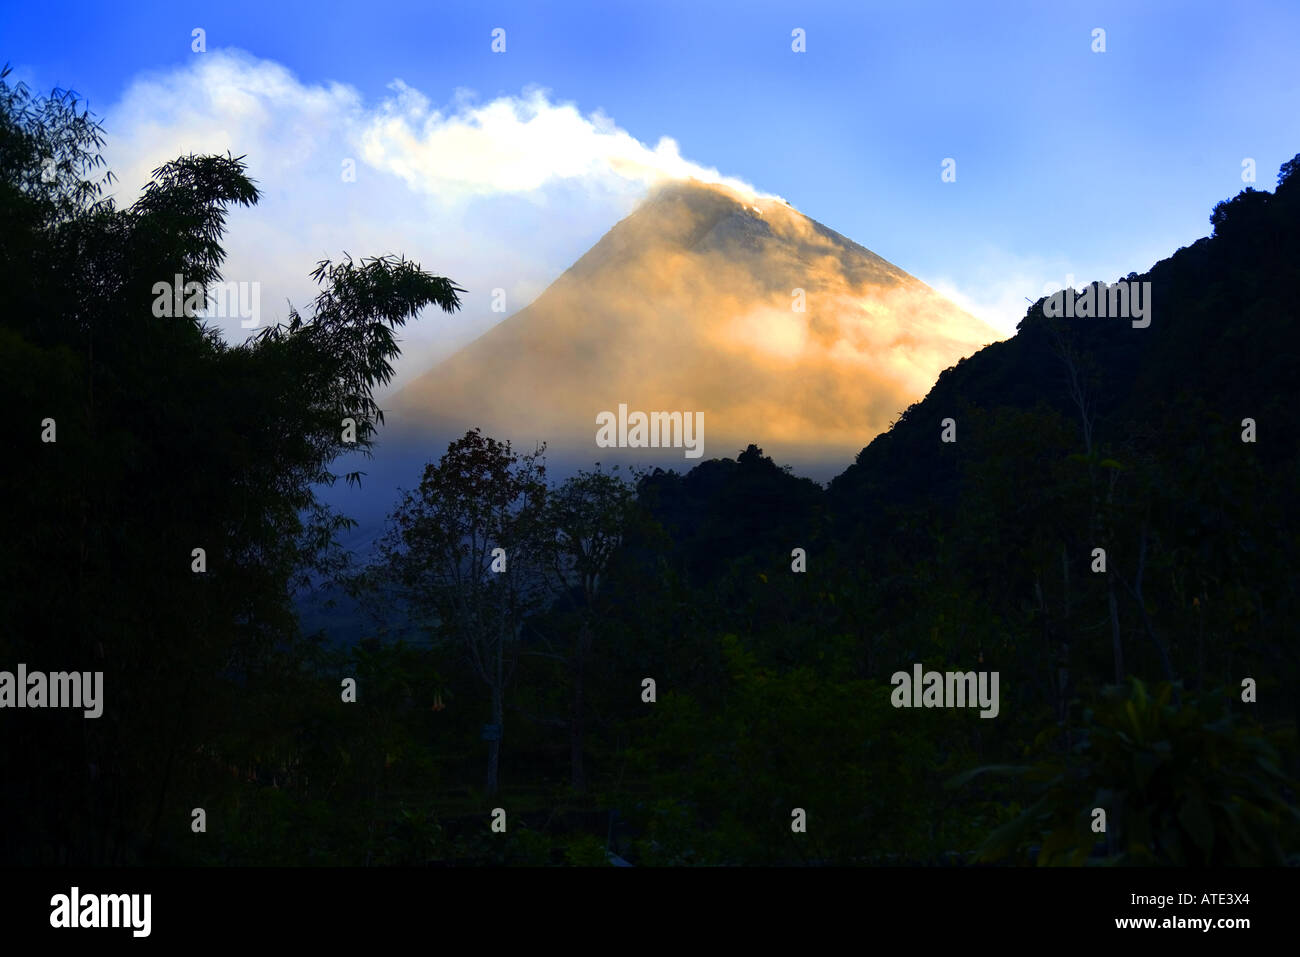 Mt. Merapi, Central Java, Indonesia - Stock Image